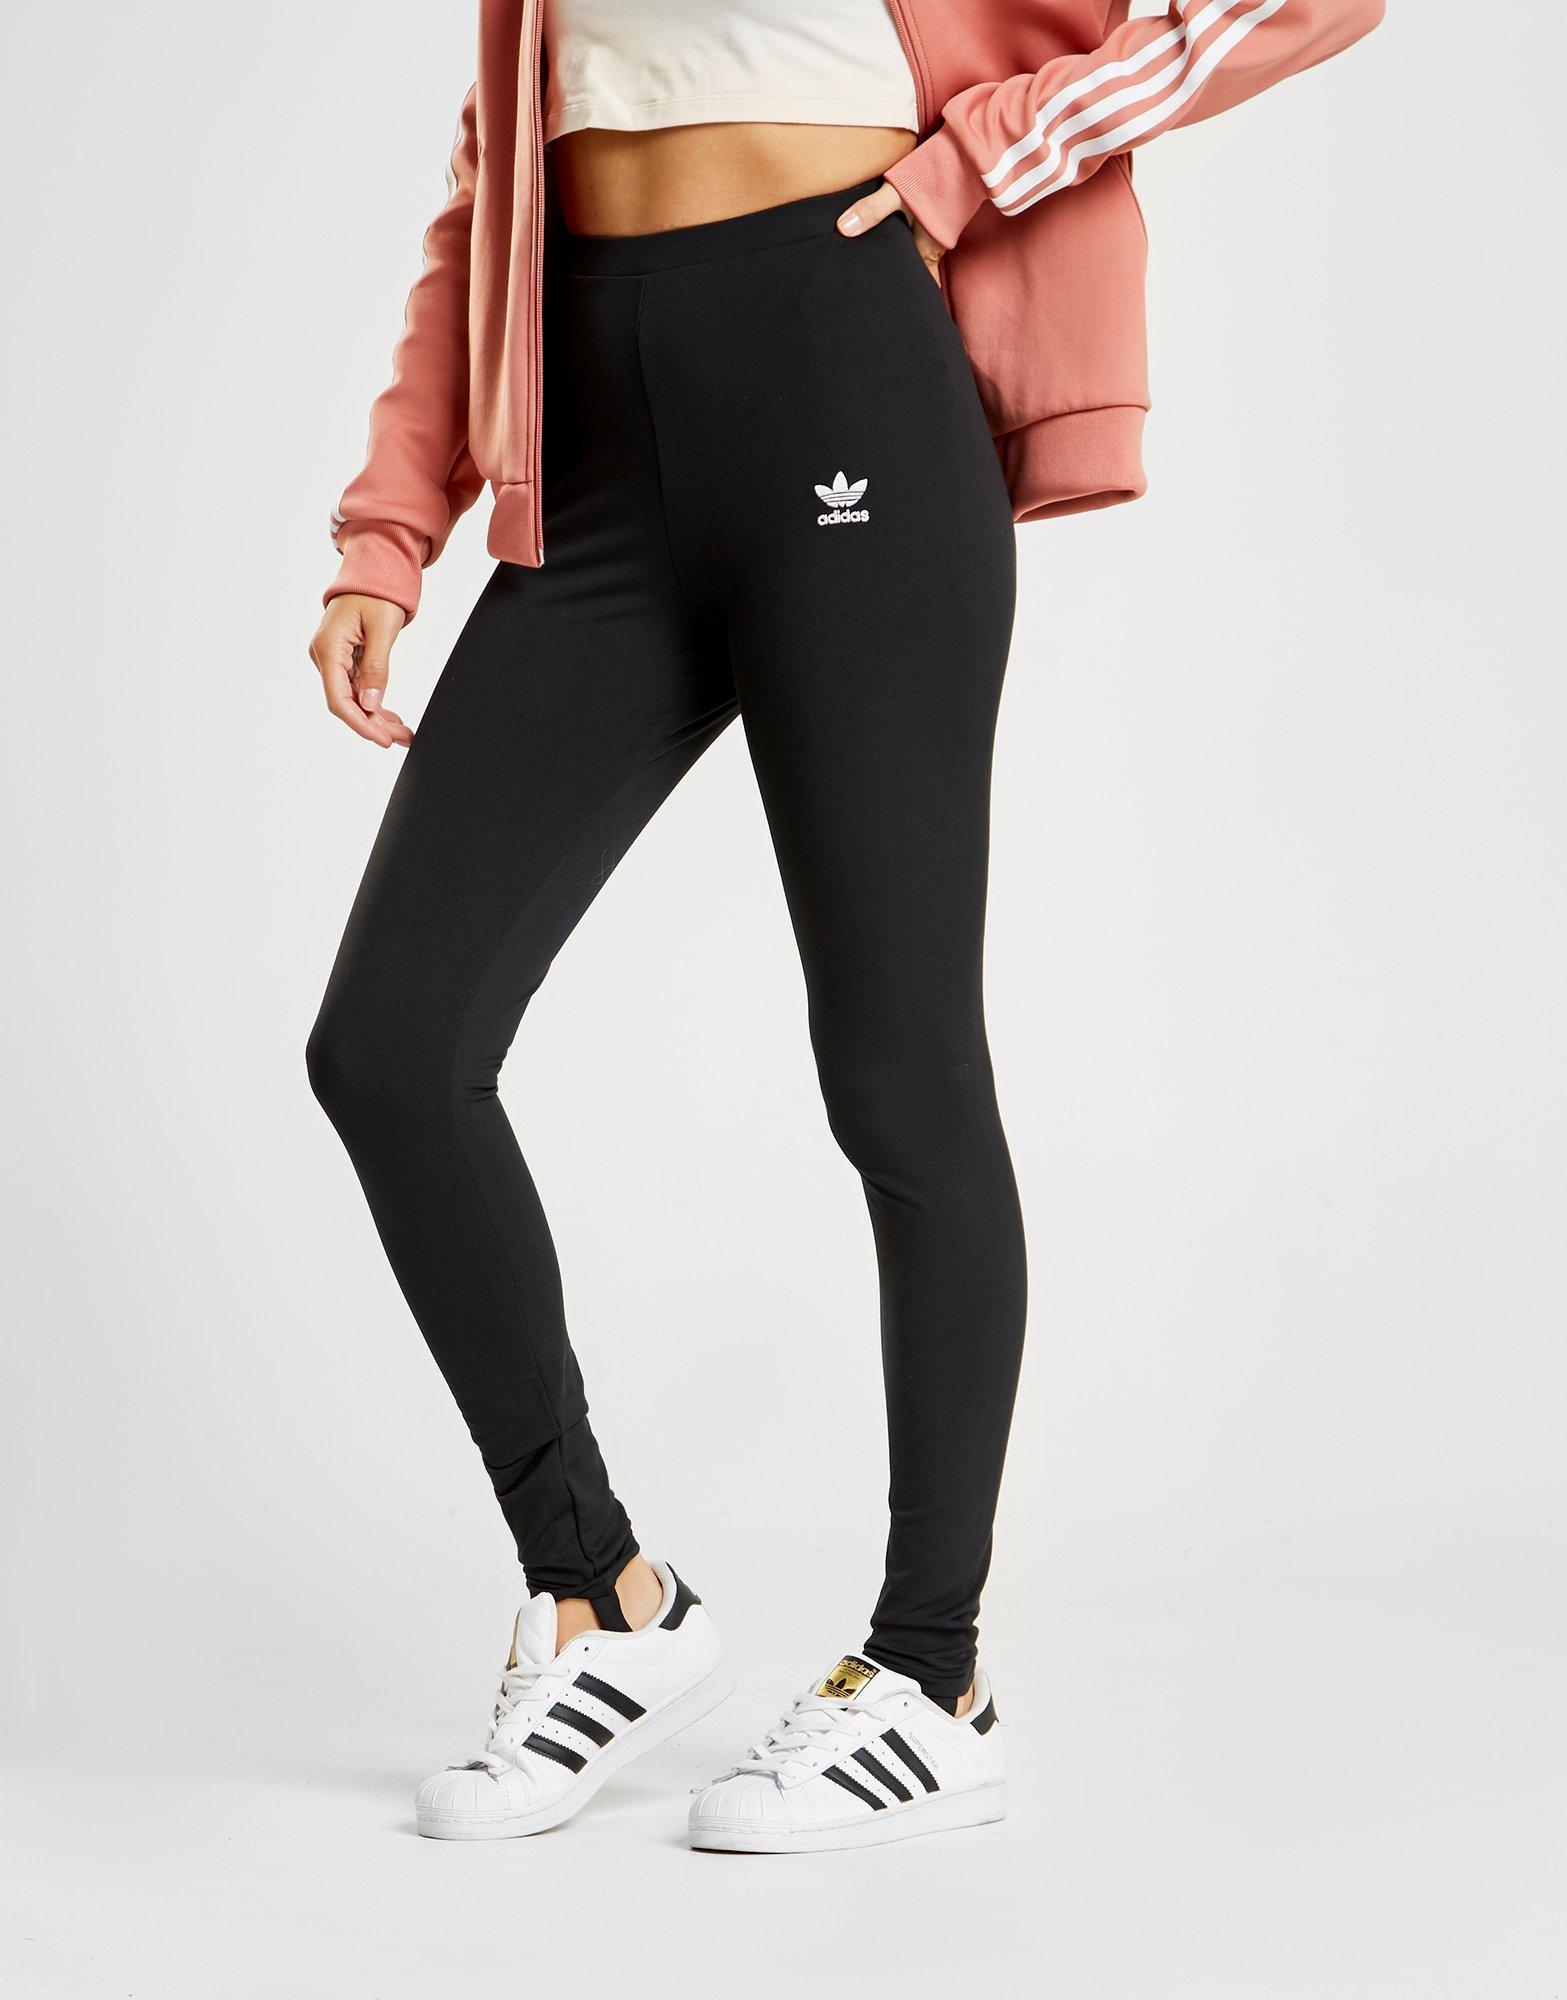 6abd6362cc5 adidas Styling Complements Stirrup Leggings in Black - Lyst